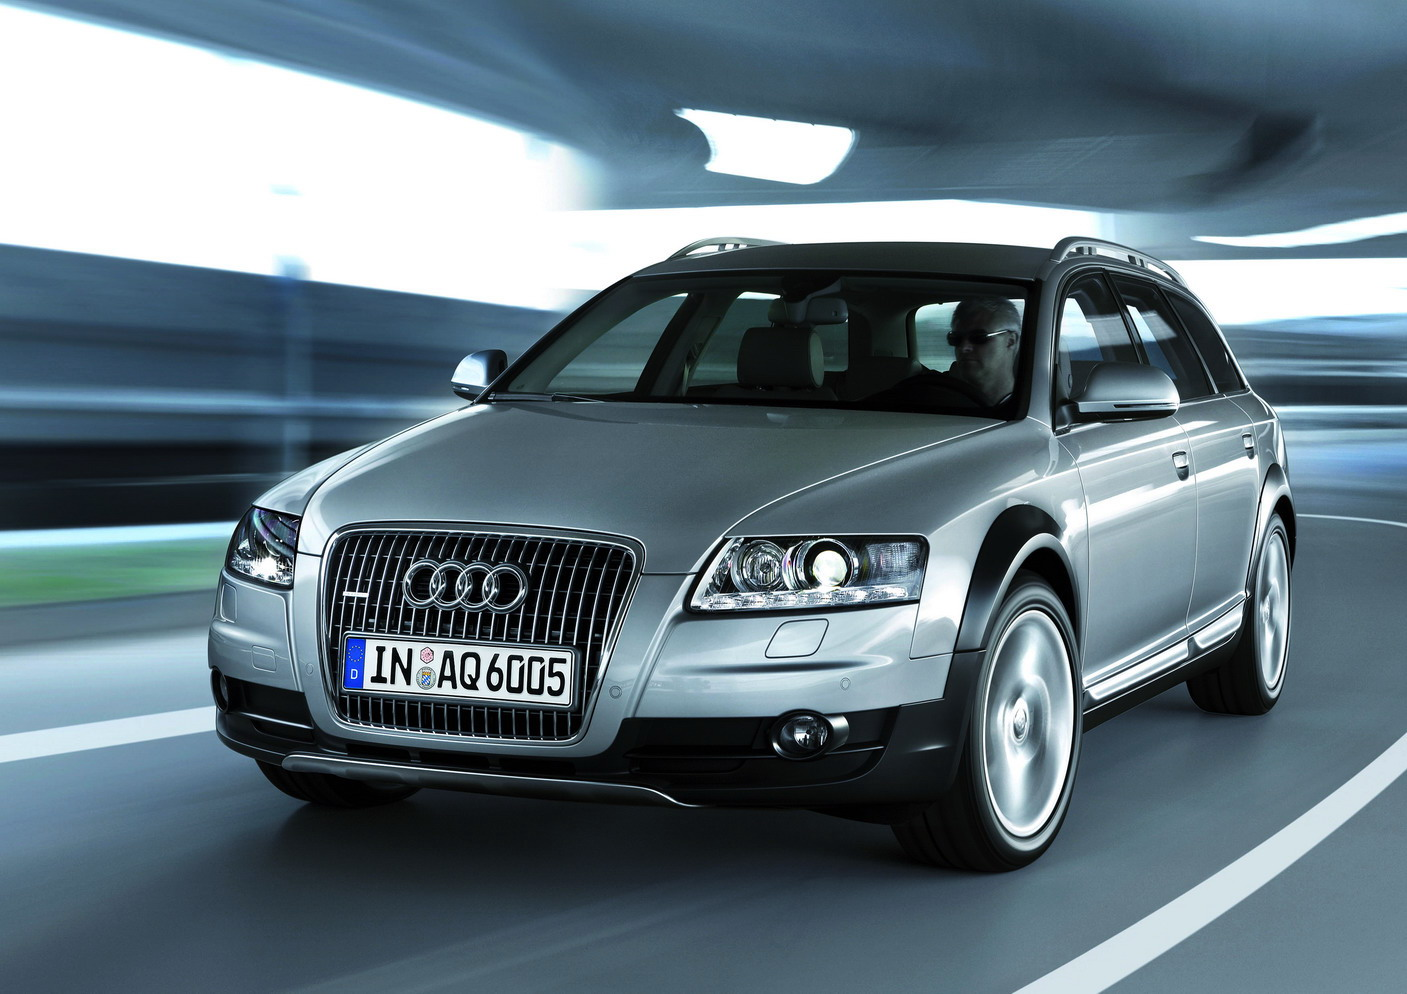 sale deals great on audi for